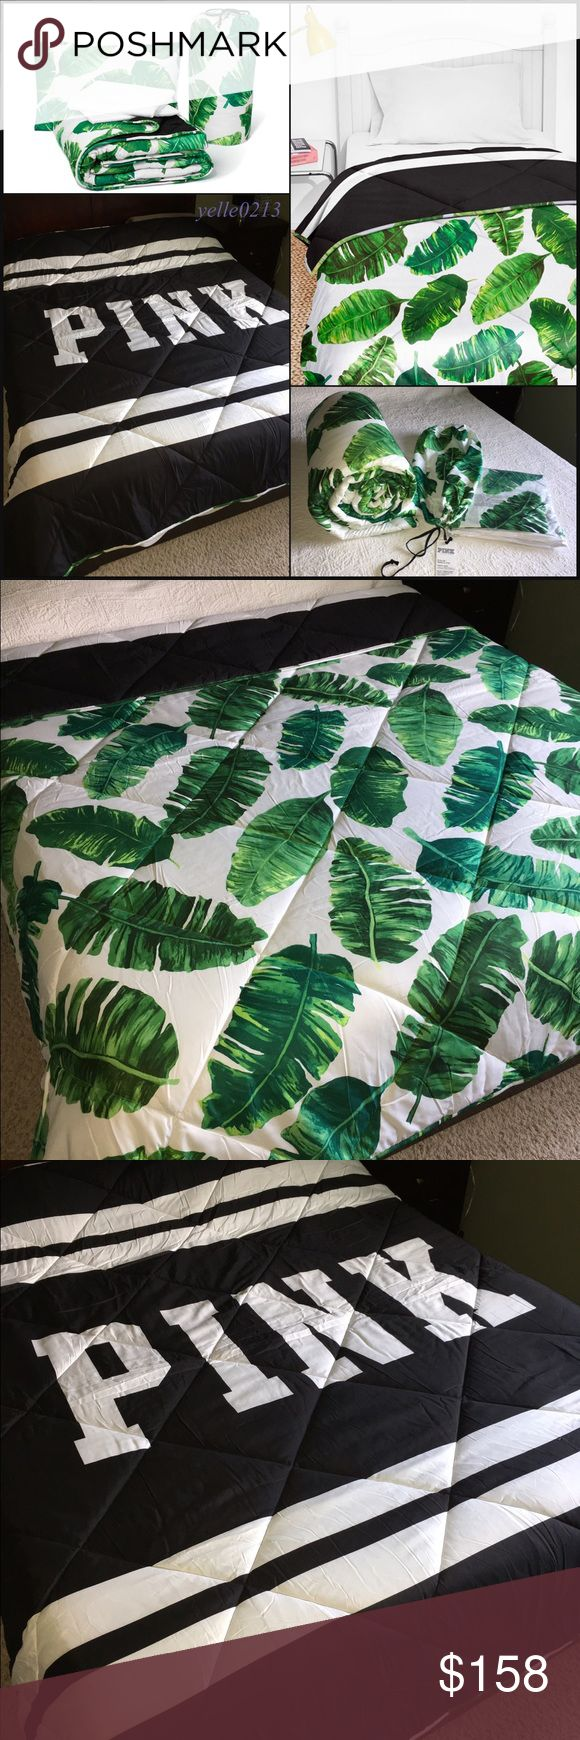 "SALENwt VS PINK Bed in a Bag F/Q Nwt VS PINK Bed in a Bag Set..  Size full/queen.. Tropical Palms..  Includes: 1 Fitted Sheet 1 Bed Sheet  2 Pillow Case  1 Reversible Comforter 84"" x 88""  BRAND NEW NEVER USED..  Price is firm here or i can lower thru Ⓜ️&️ Thank you.. Victoria's Secret Accessories"